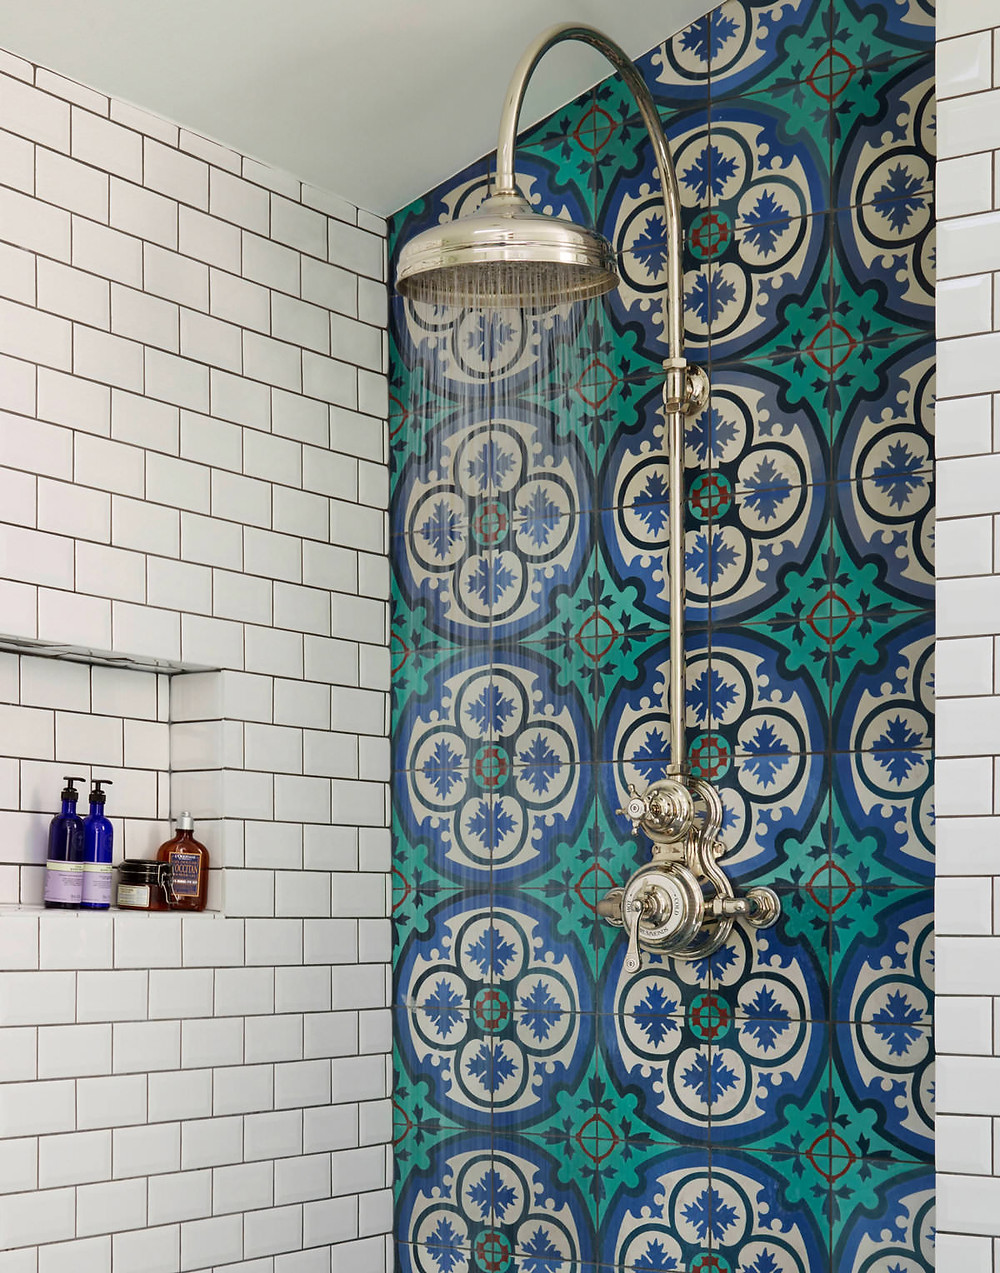 Luxury interiors: Dalby shower is set in a tiled walk-in enclosure